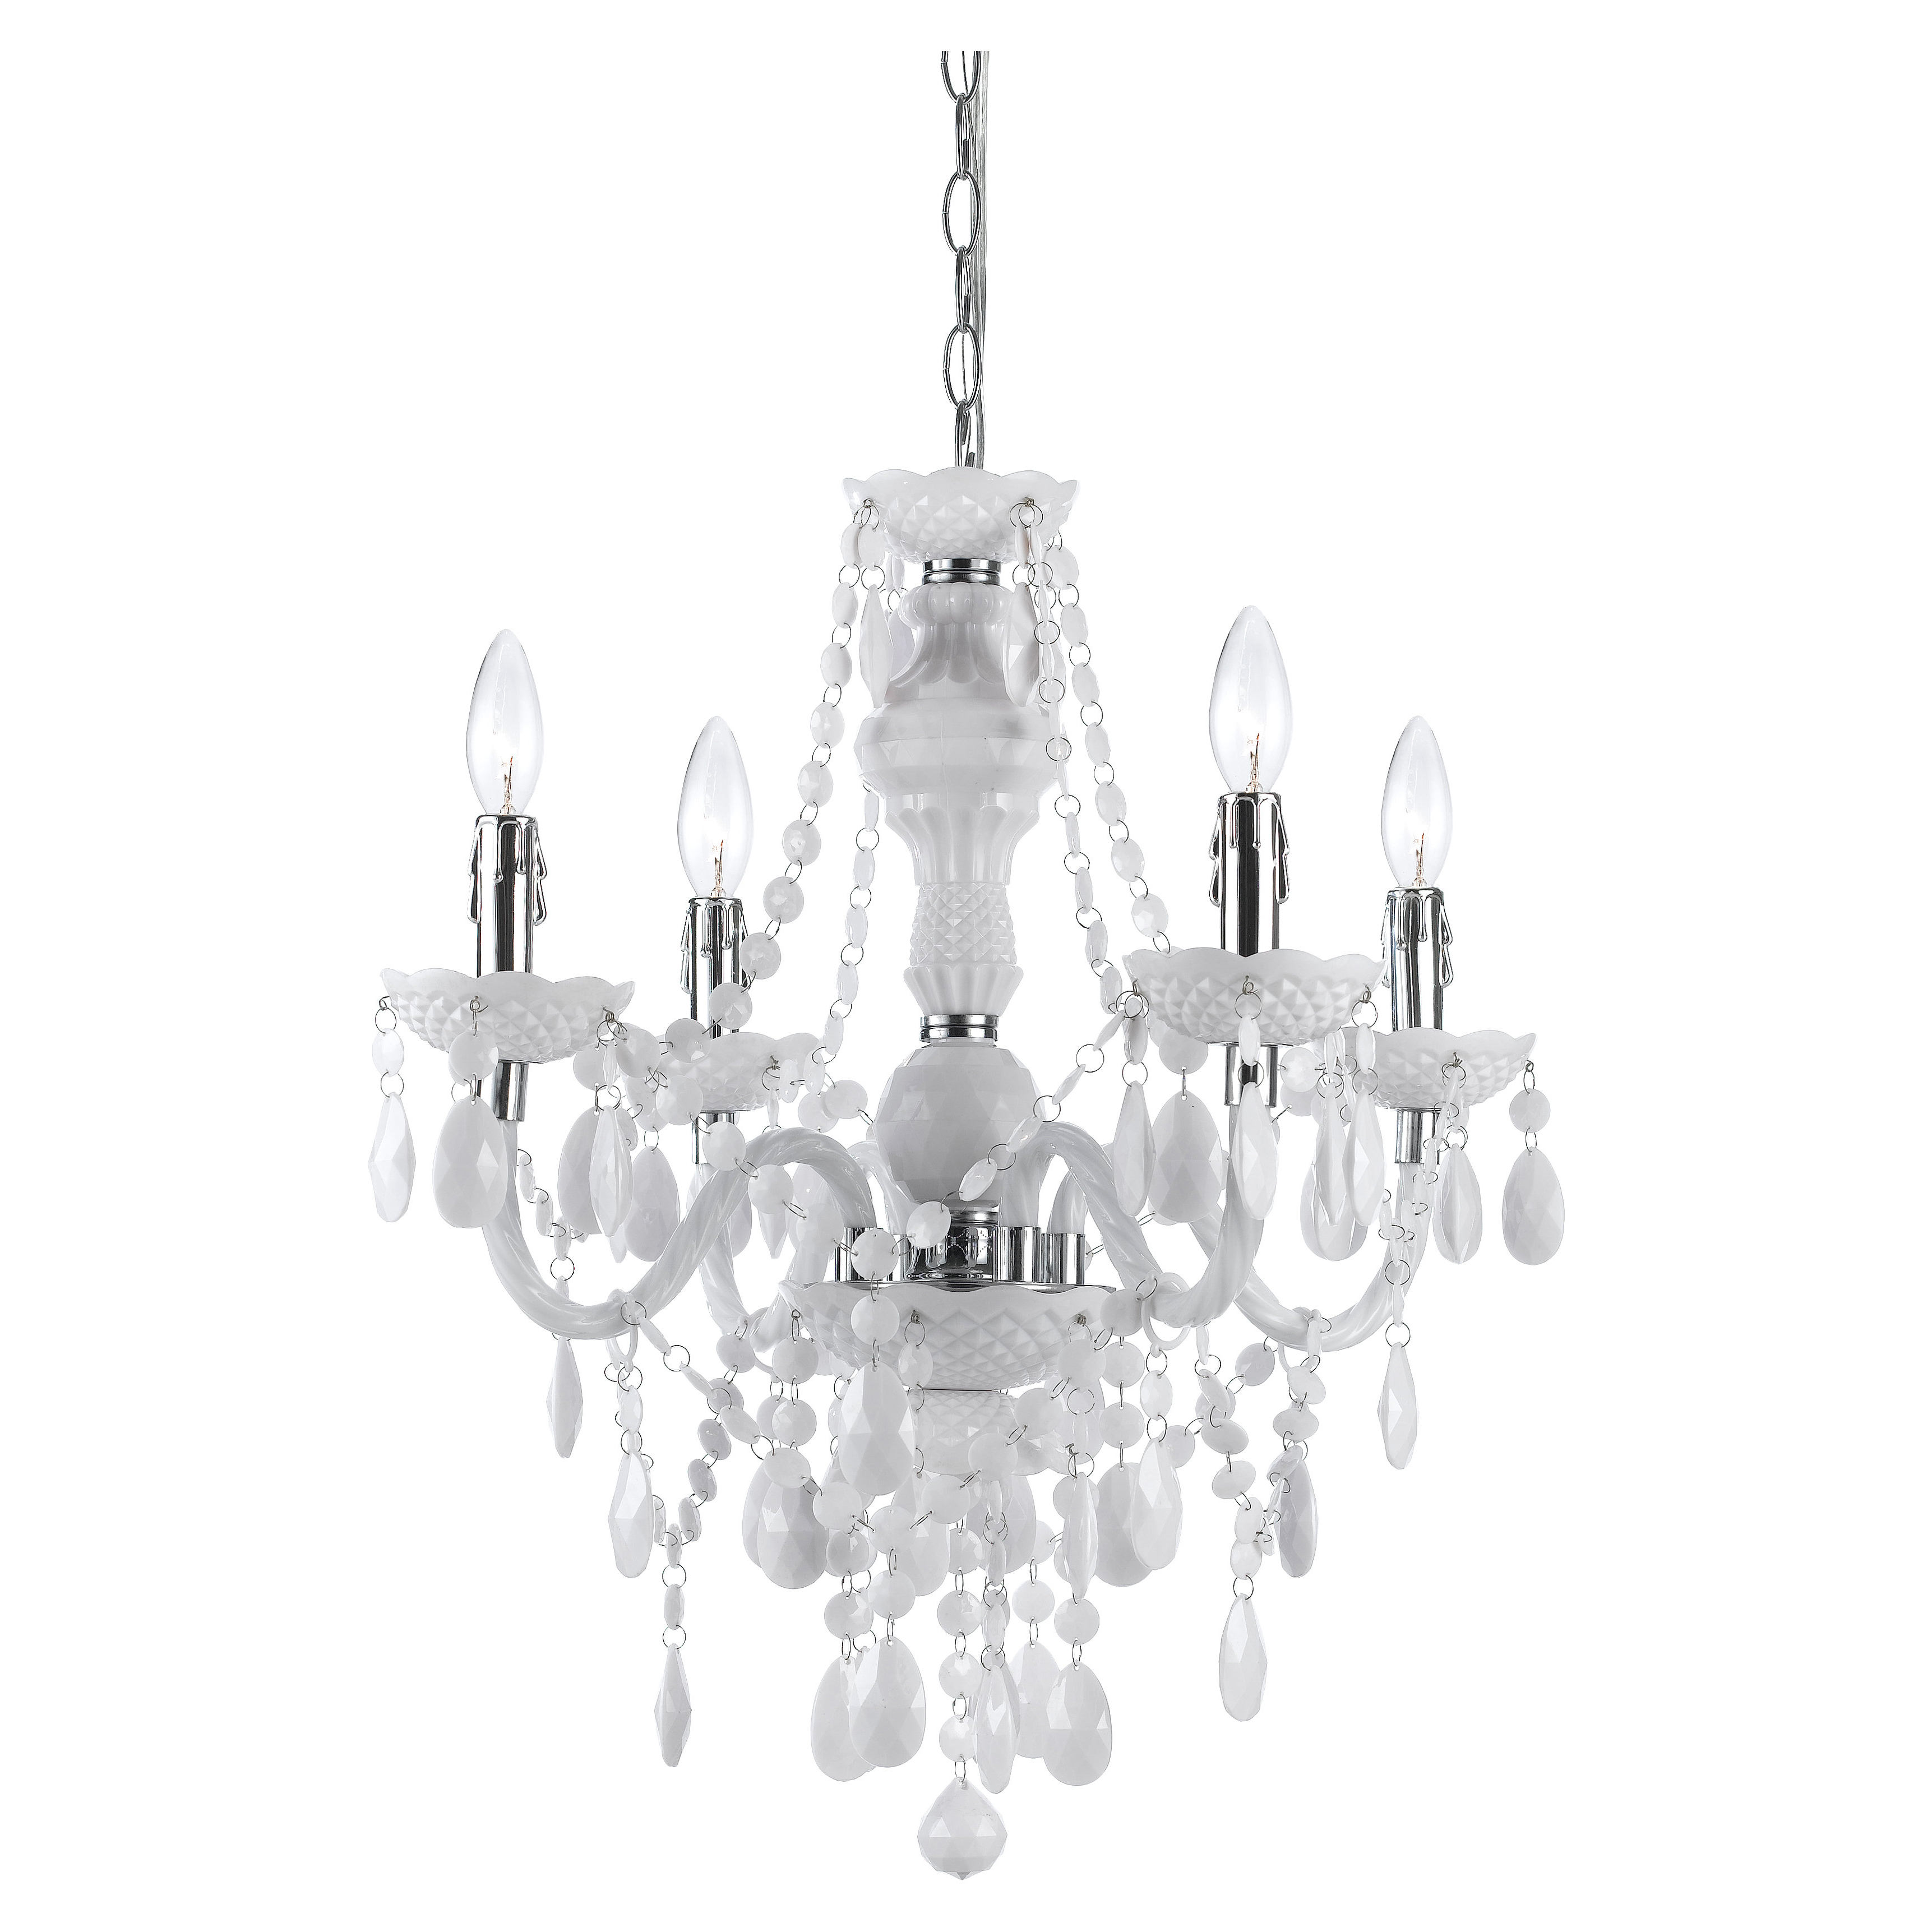 Most Recent Geoffroy 4 Light Candle Style Chandelier Within Aldora 4 Light Candle Style Chandeliers (Gallery 6 of 20)